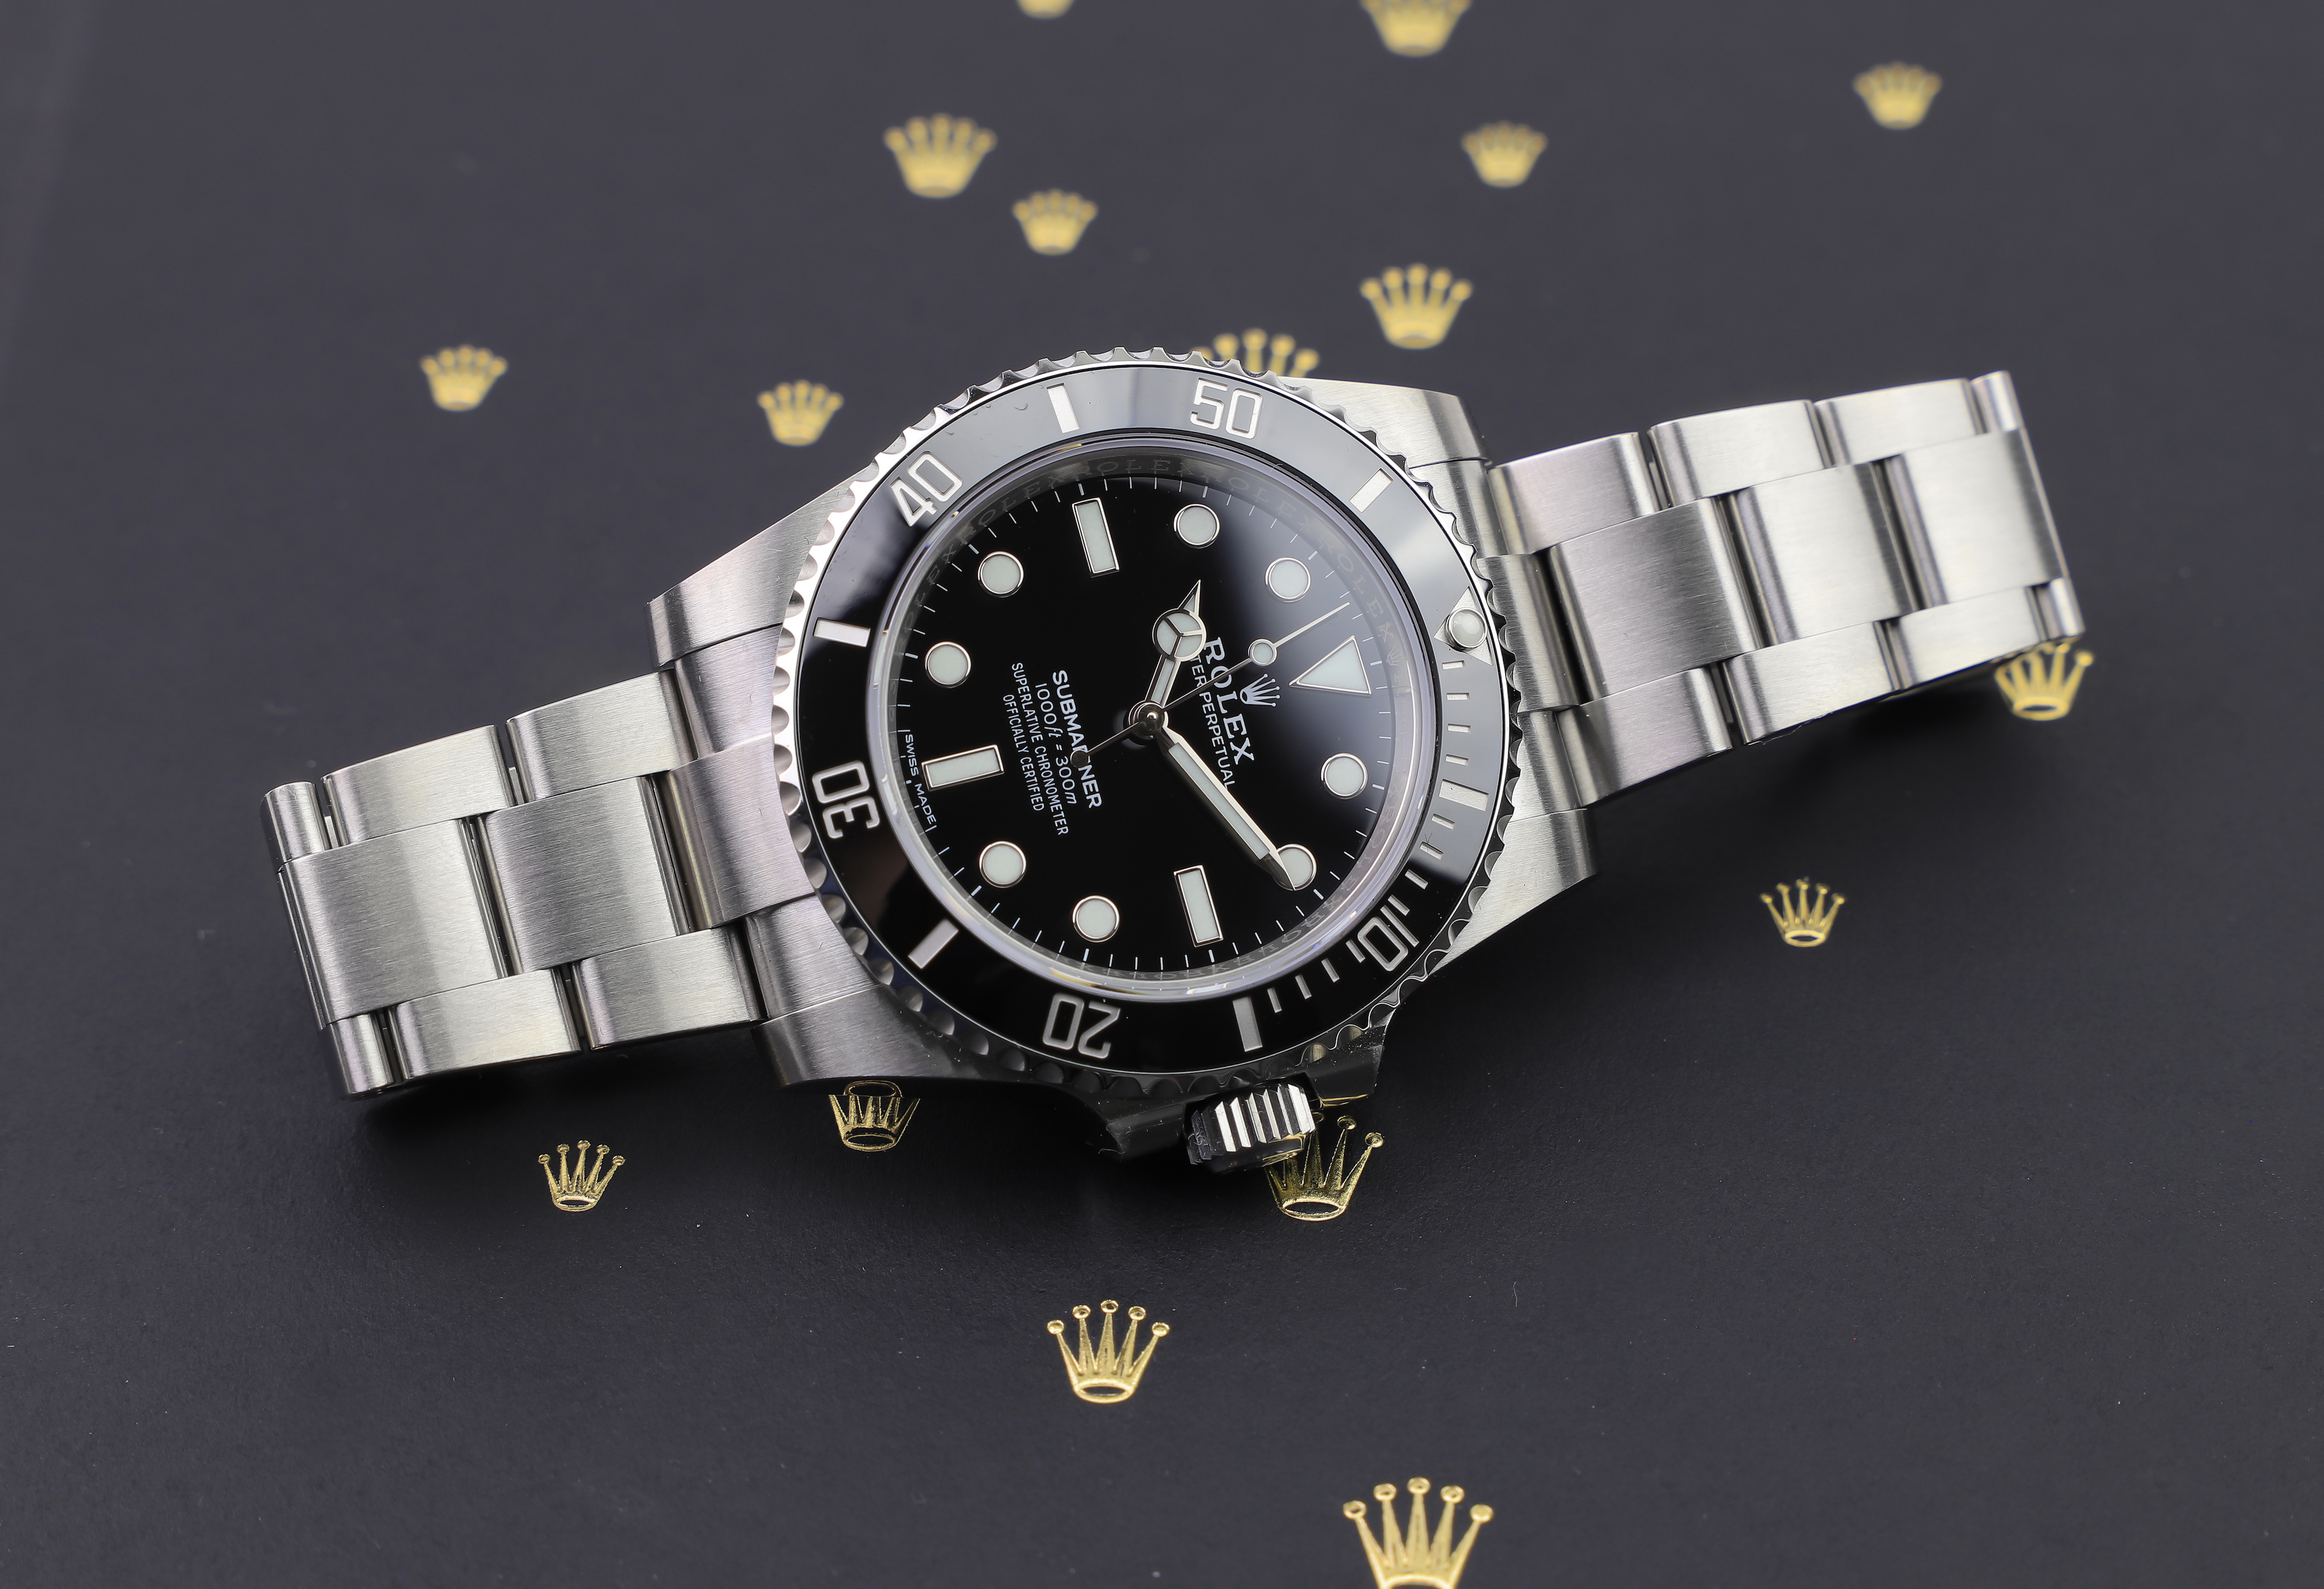 How Much Does a new Rolex Submariner Cost? (In 2020